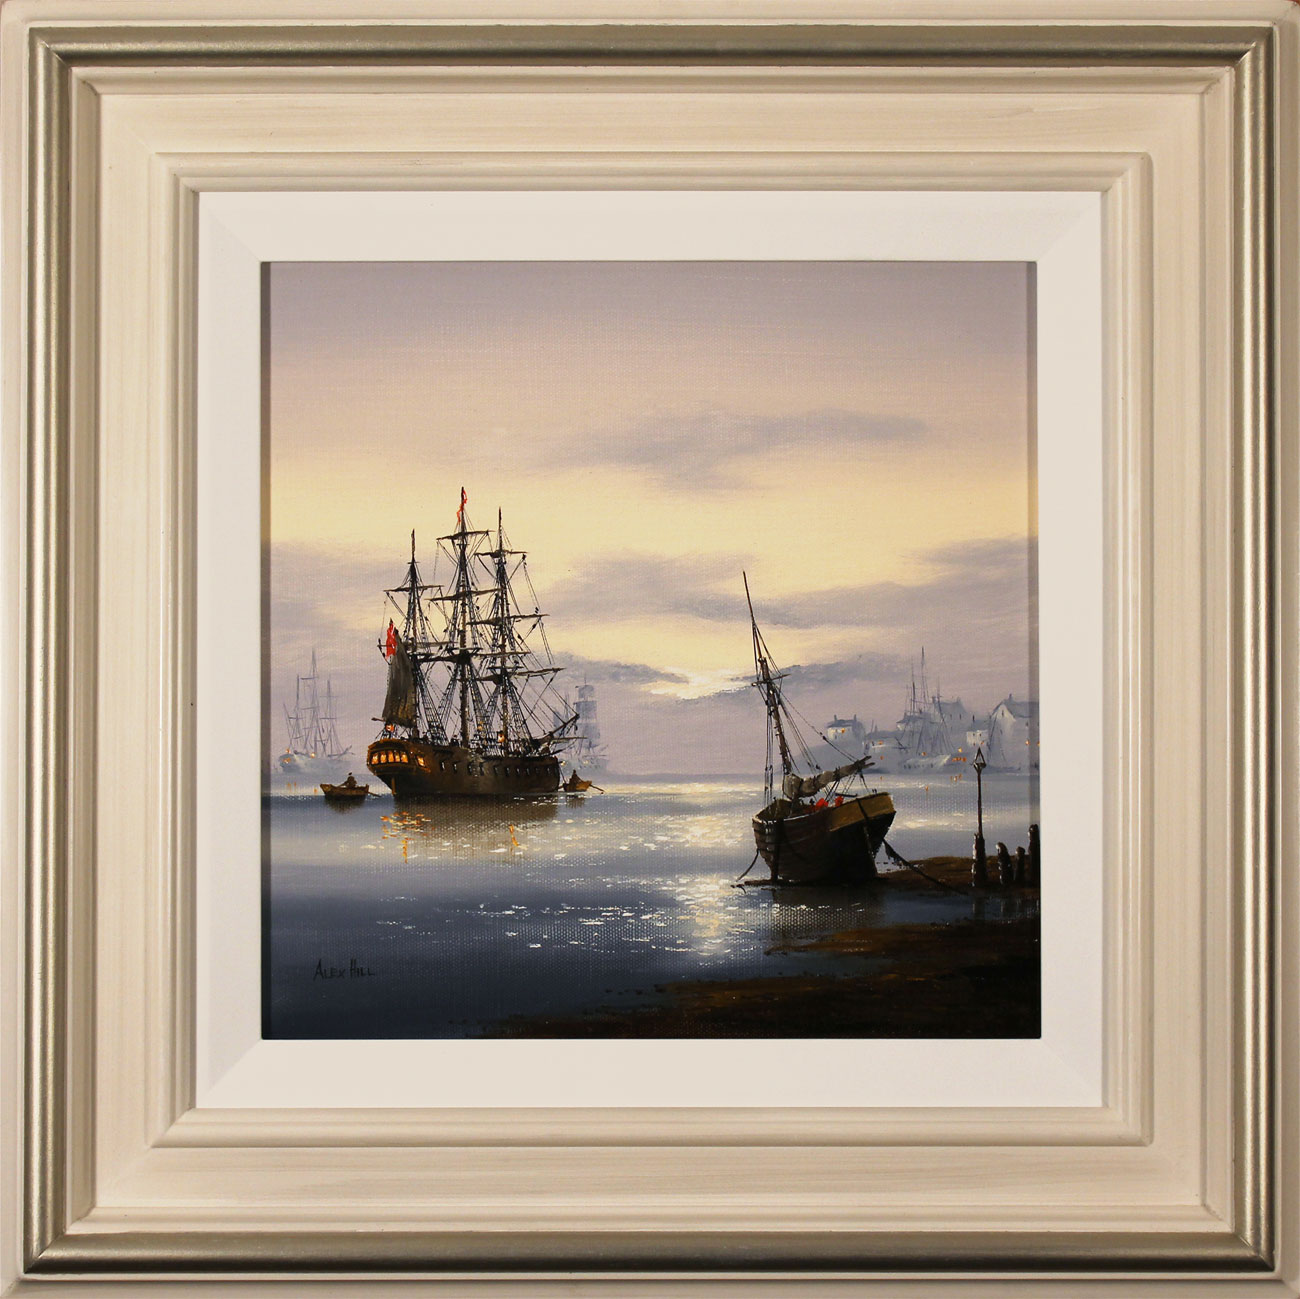 Alex Hill, Original oil painting on canvas, Sunrise Mooring. Click to enlarge